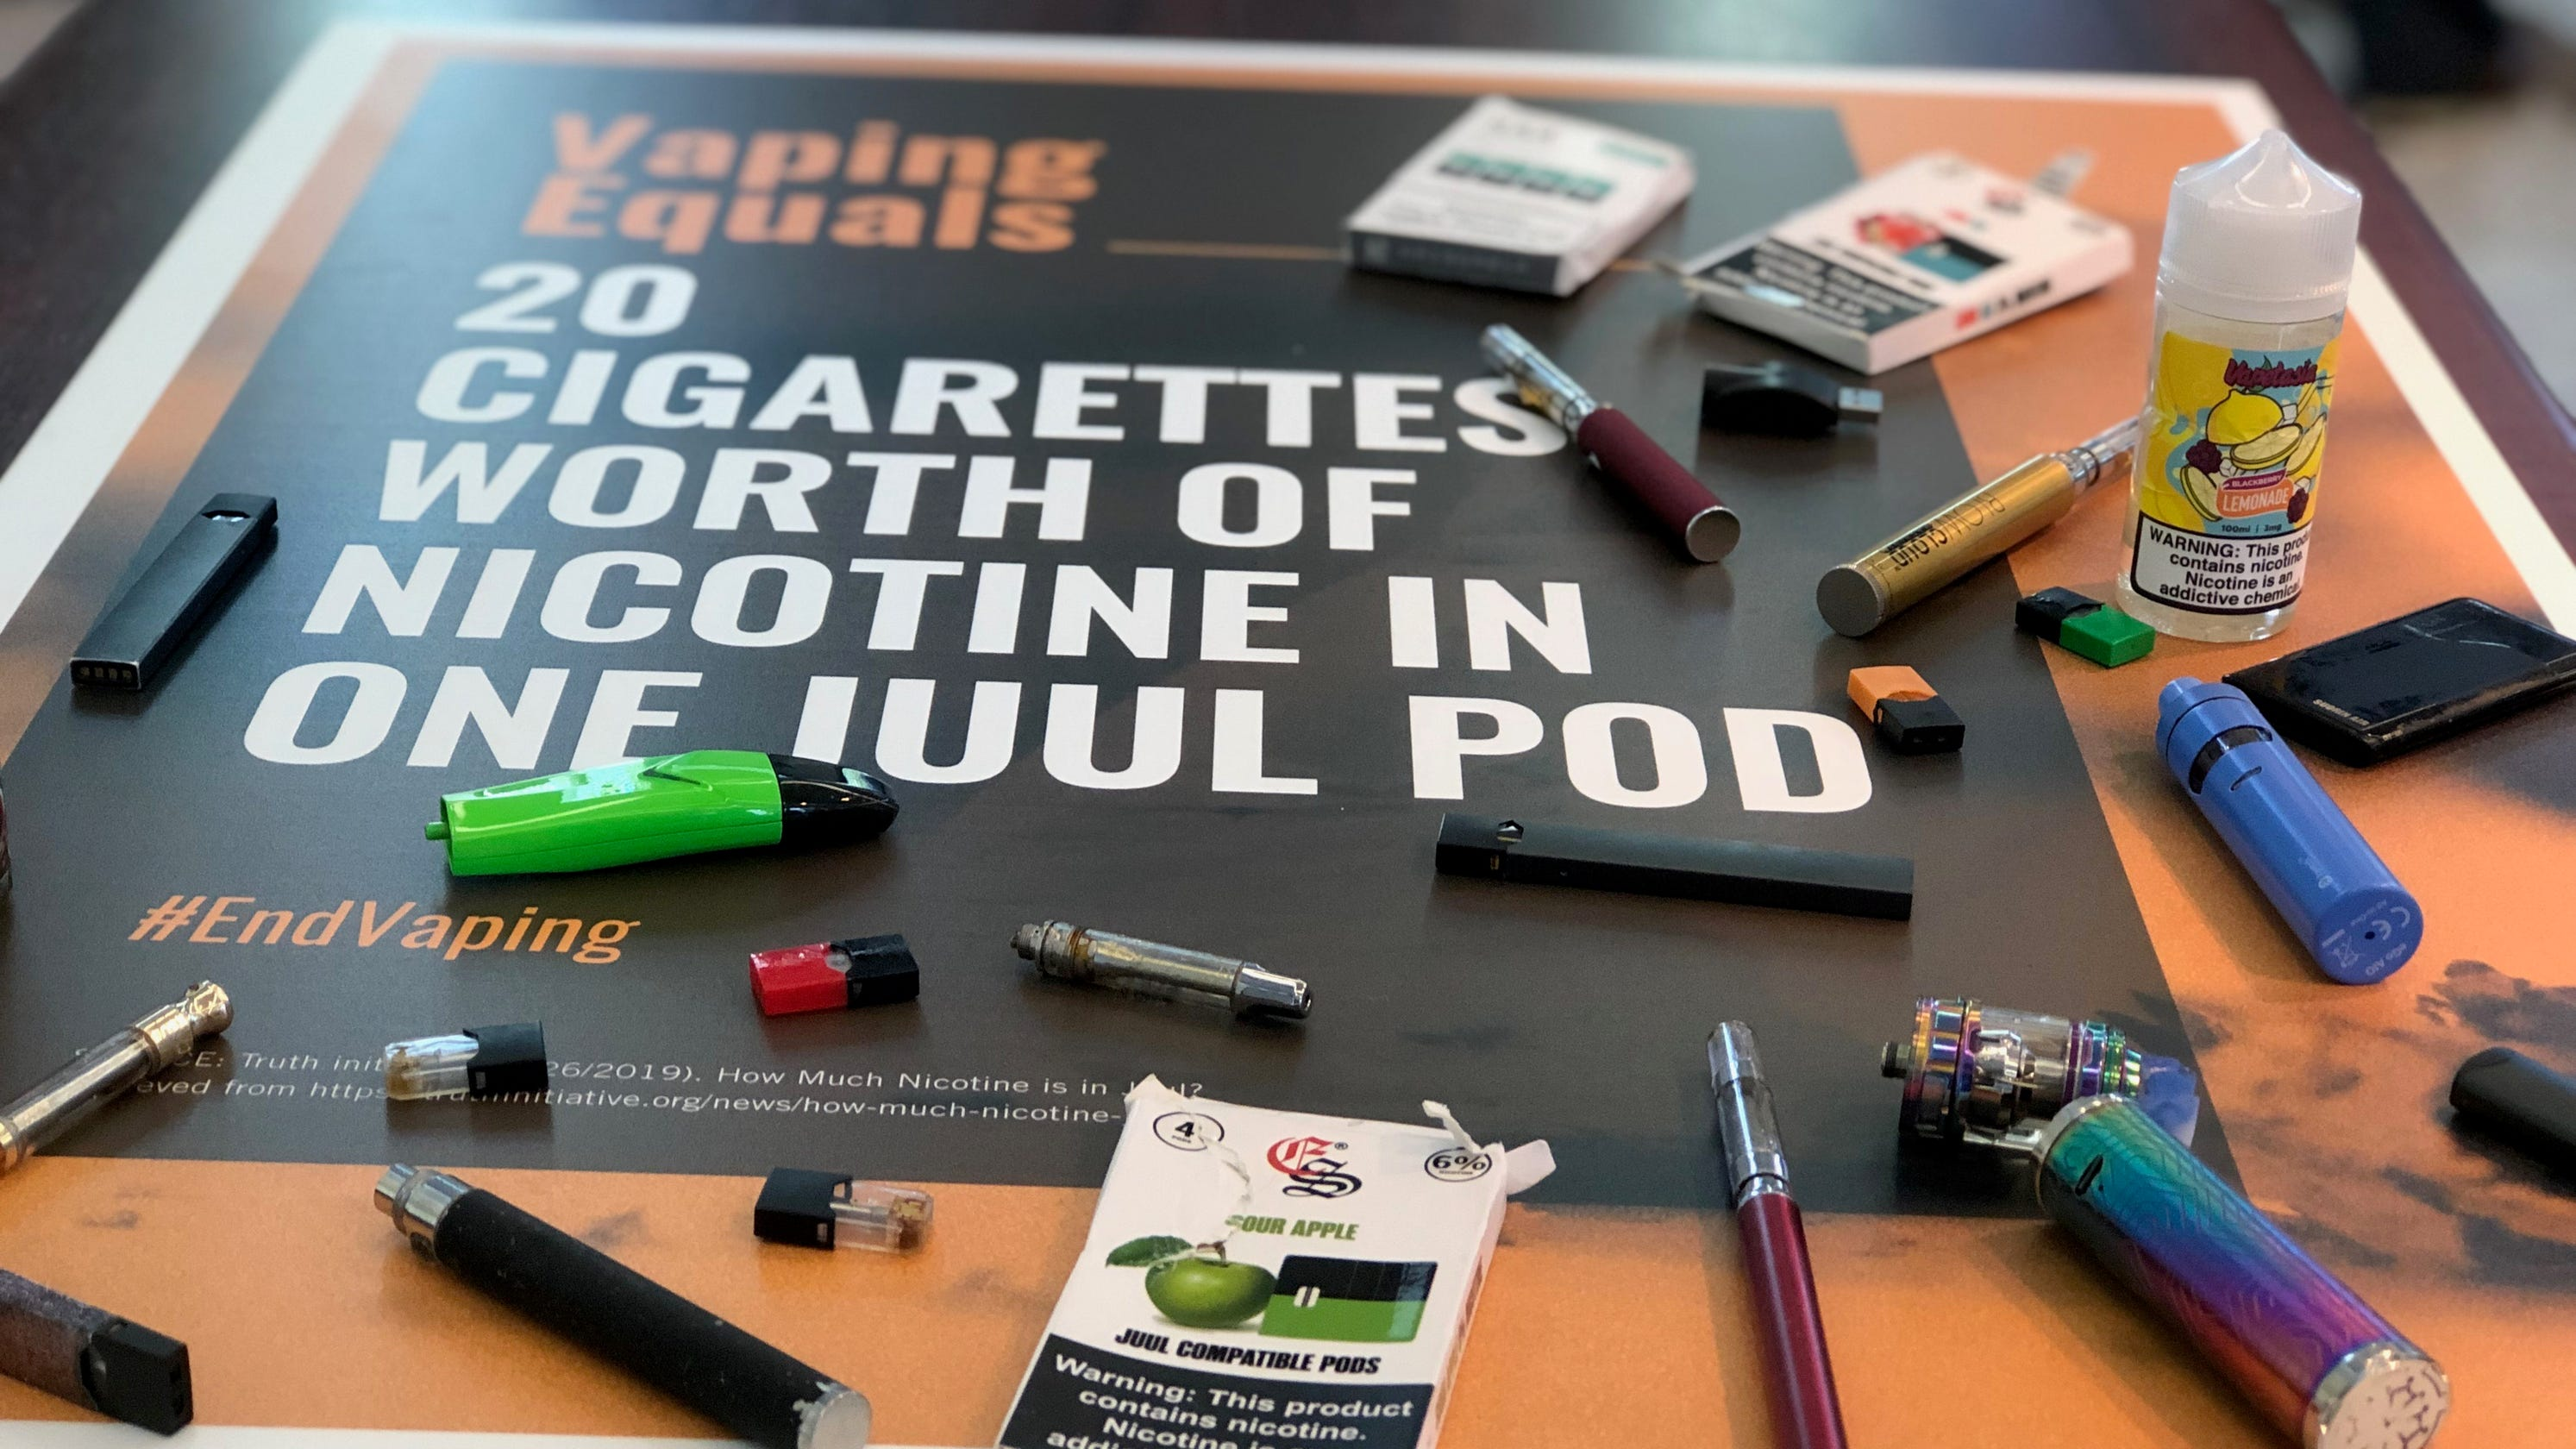 JCPS fights vaping, JUUL in school with e-cigarette campaign